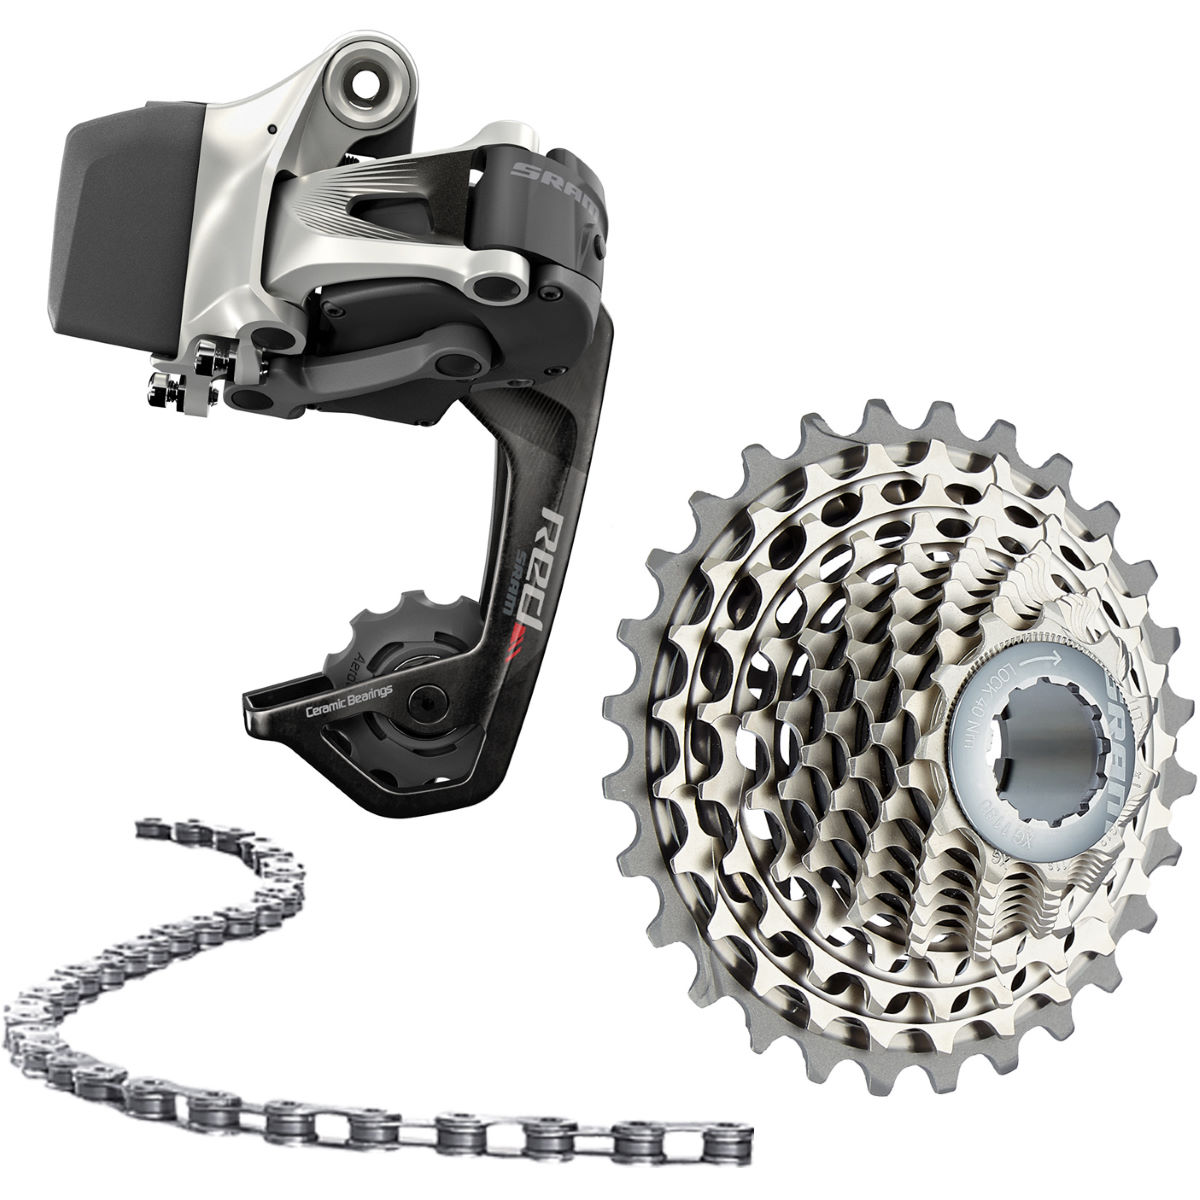 Kit SRAM Red eTap 11sp WIFLI - n/a 11 Speed n/a n/a Black - Red